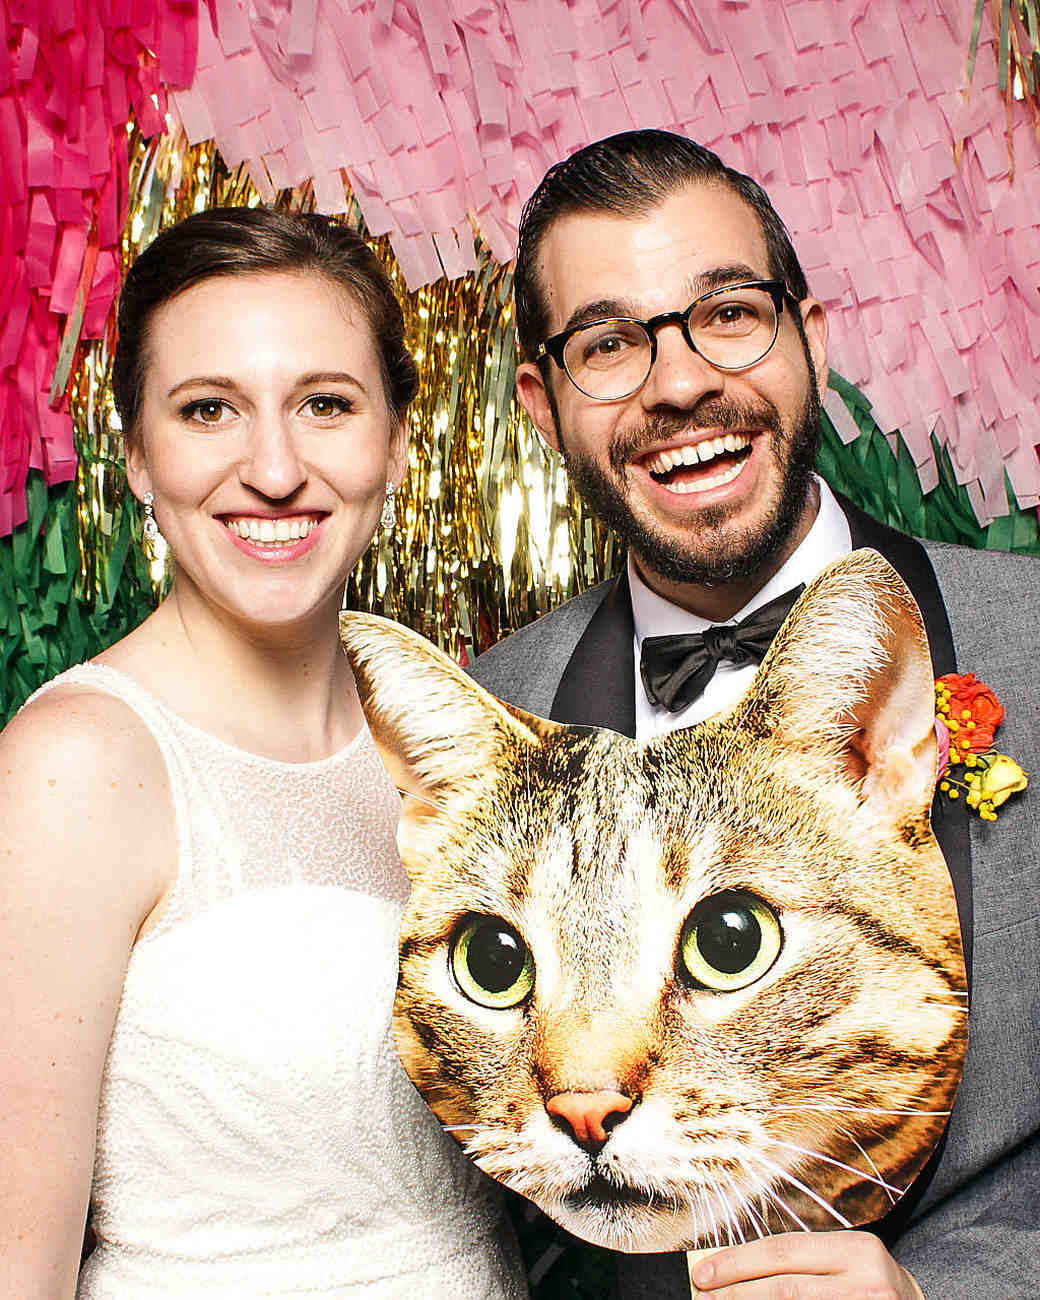 becca zac wedding photo booth